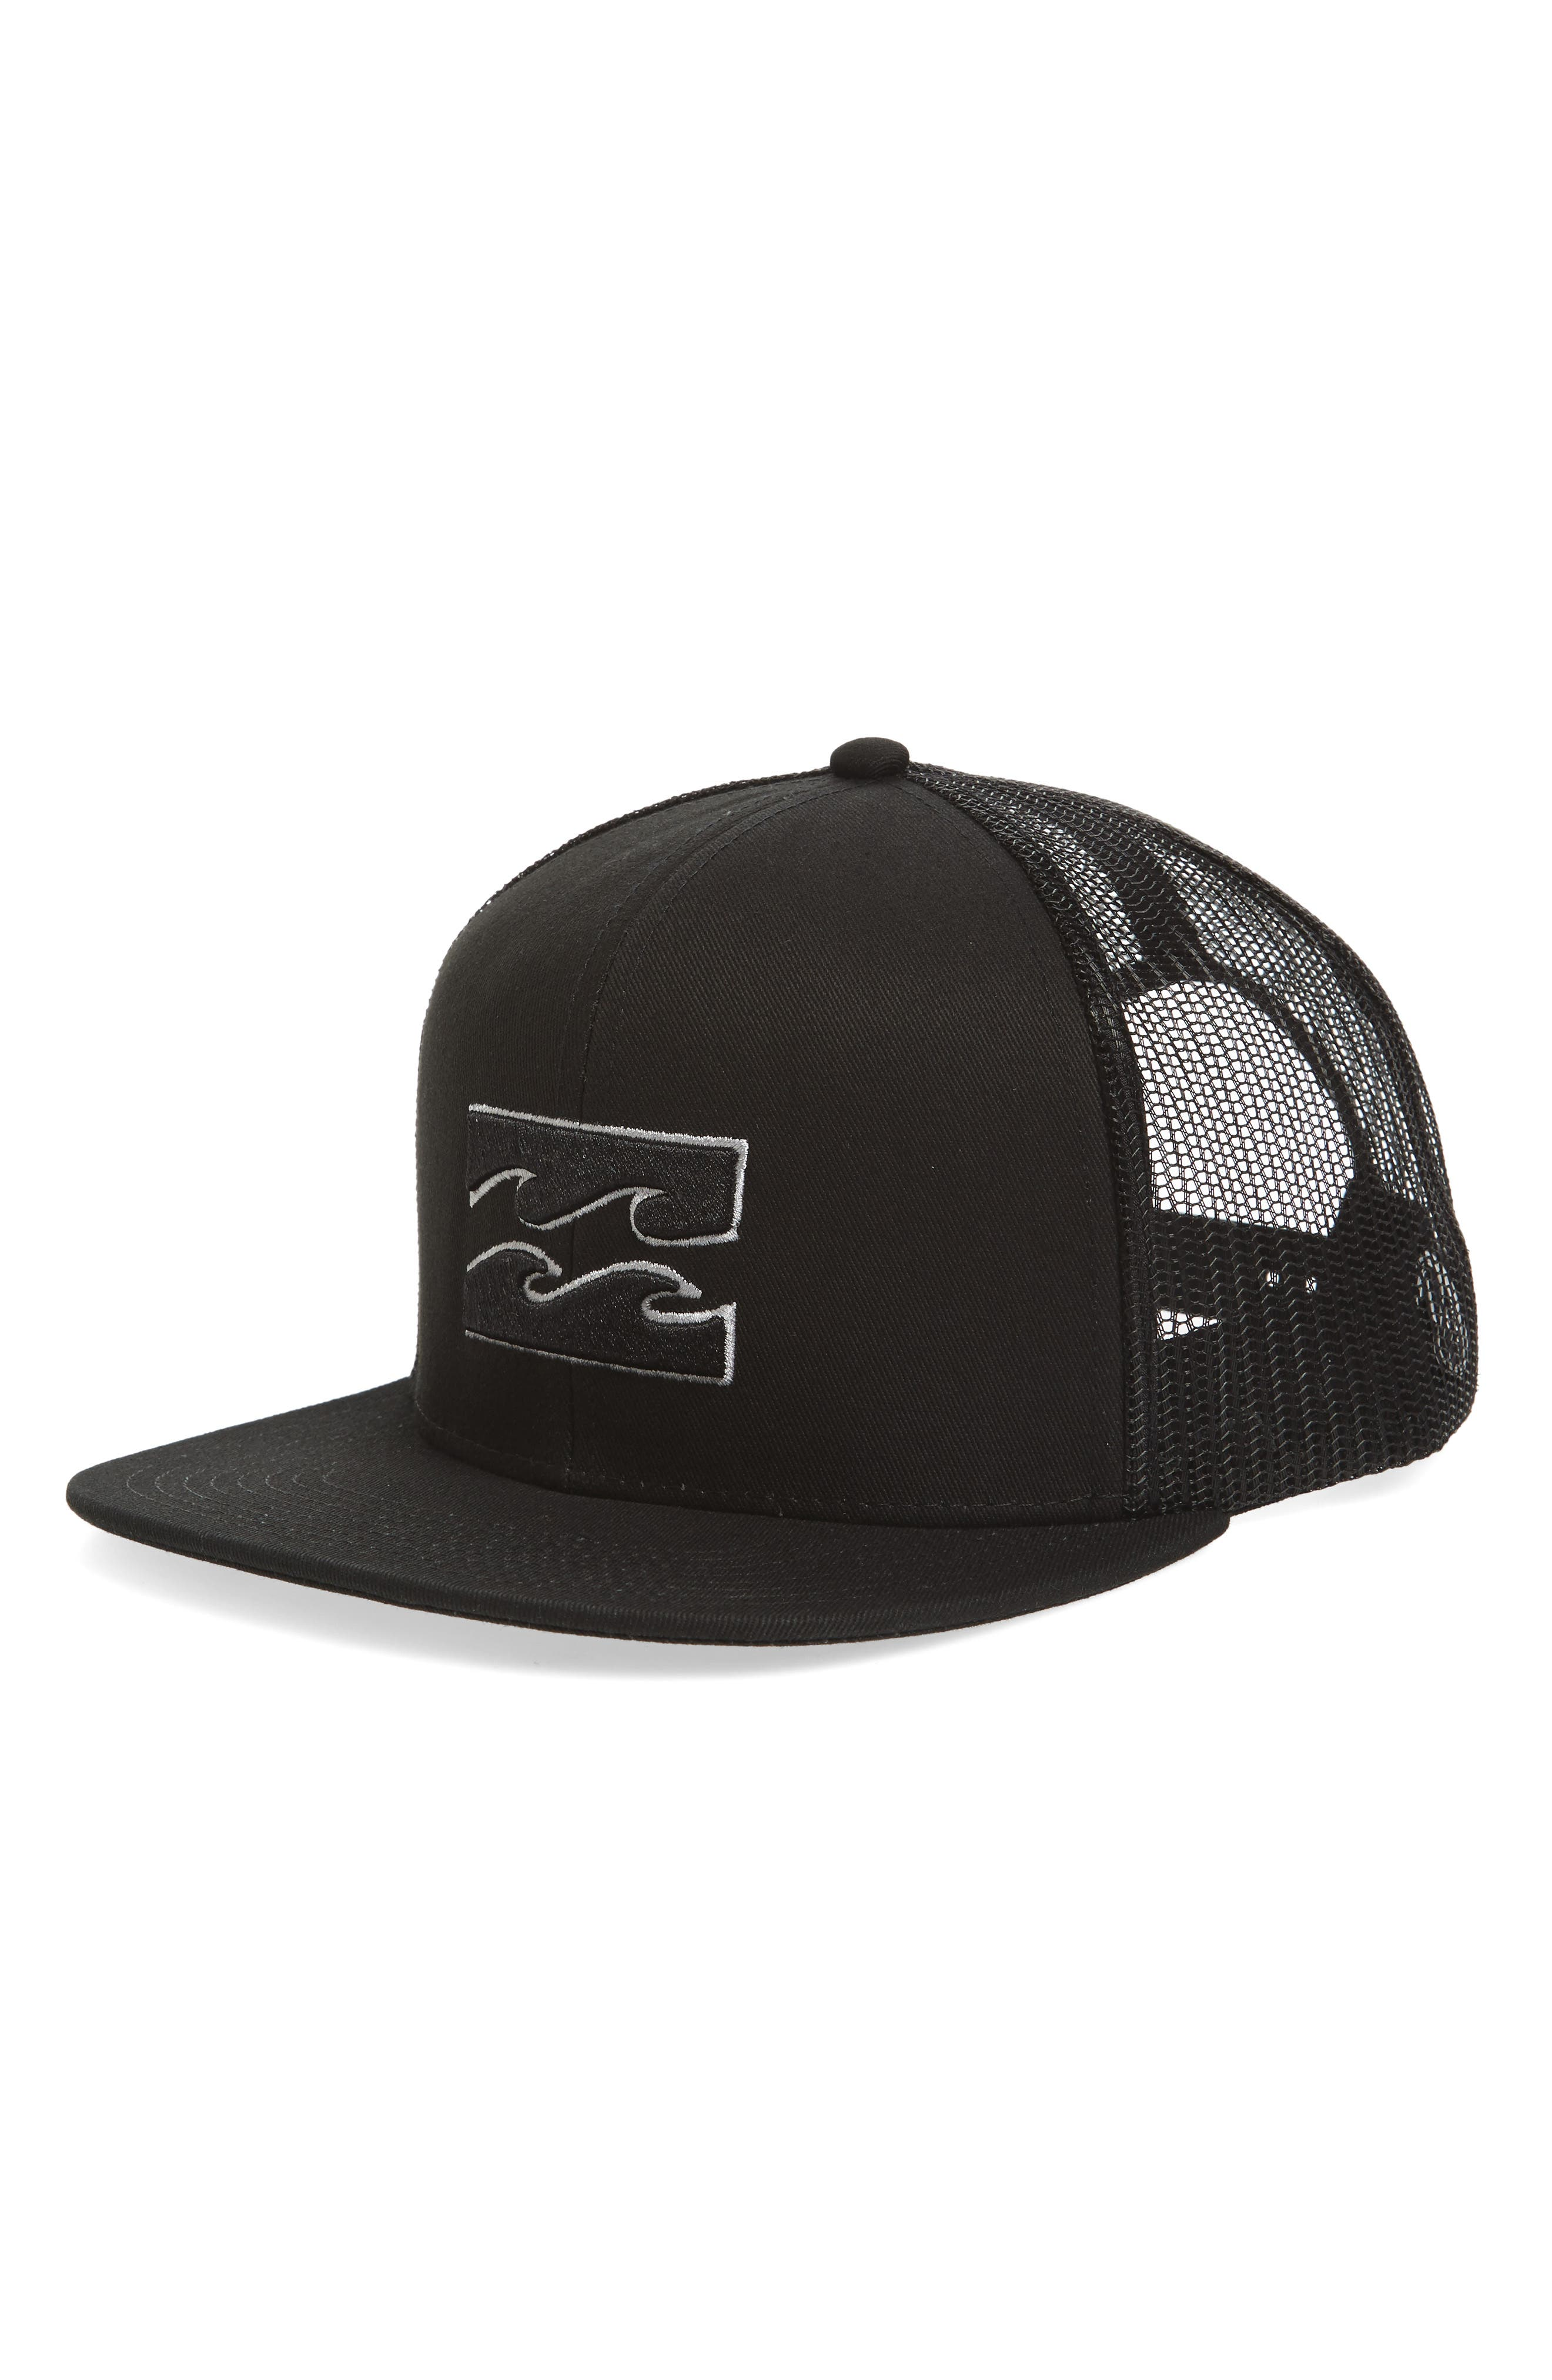 All Day Trucker Hat,                         Main,                         color, 027